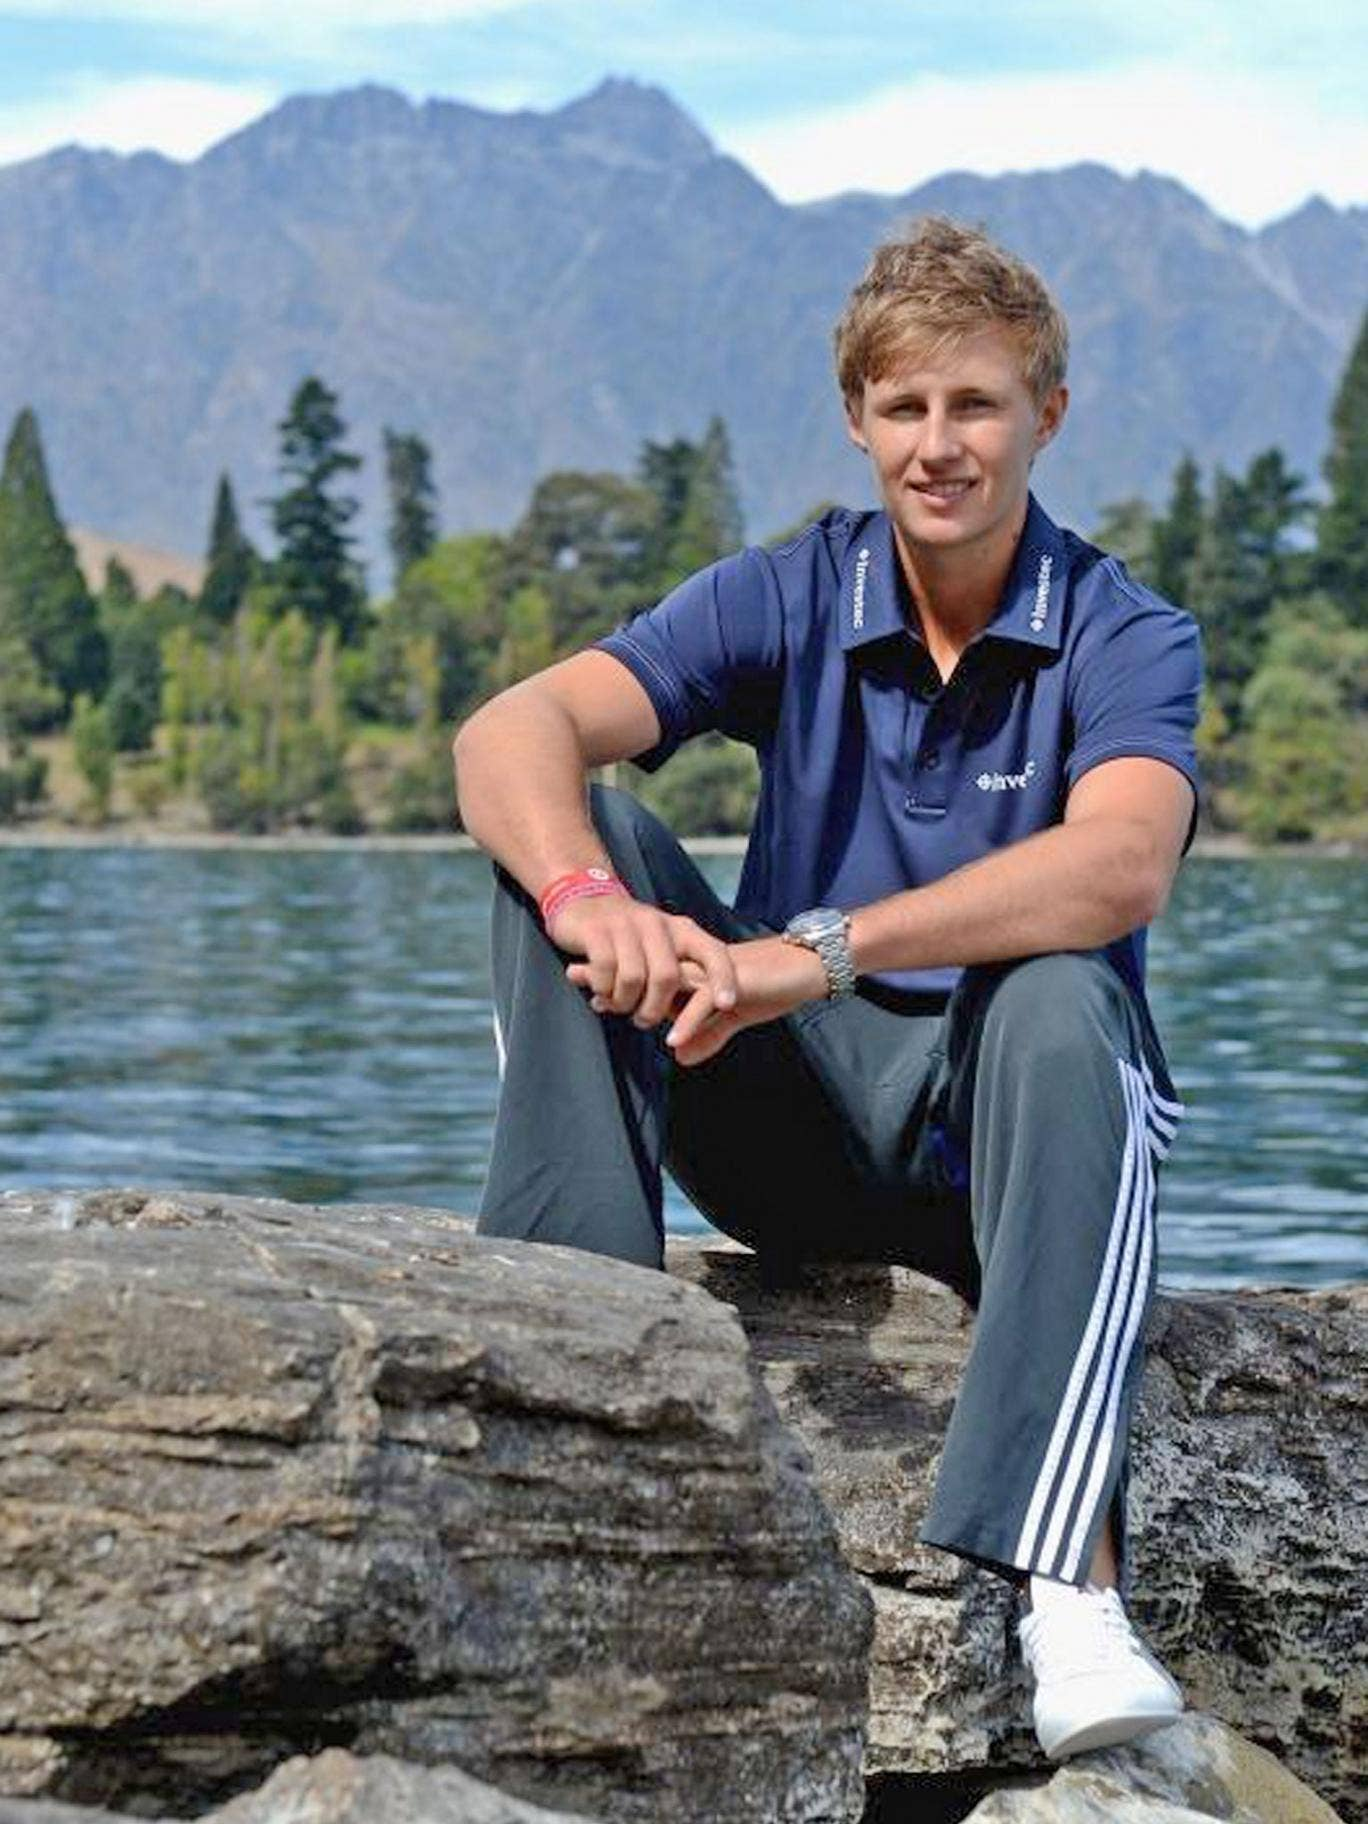 Joe Root at the Remarkables mountain range in Queenstown